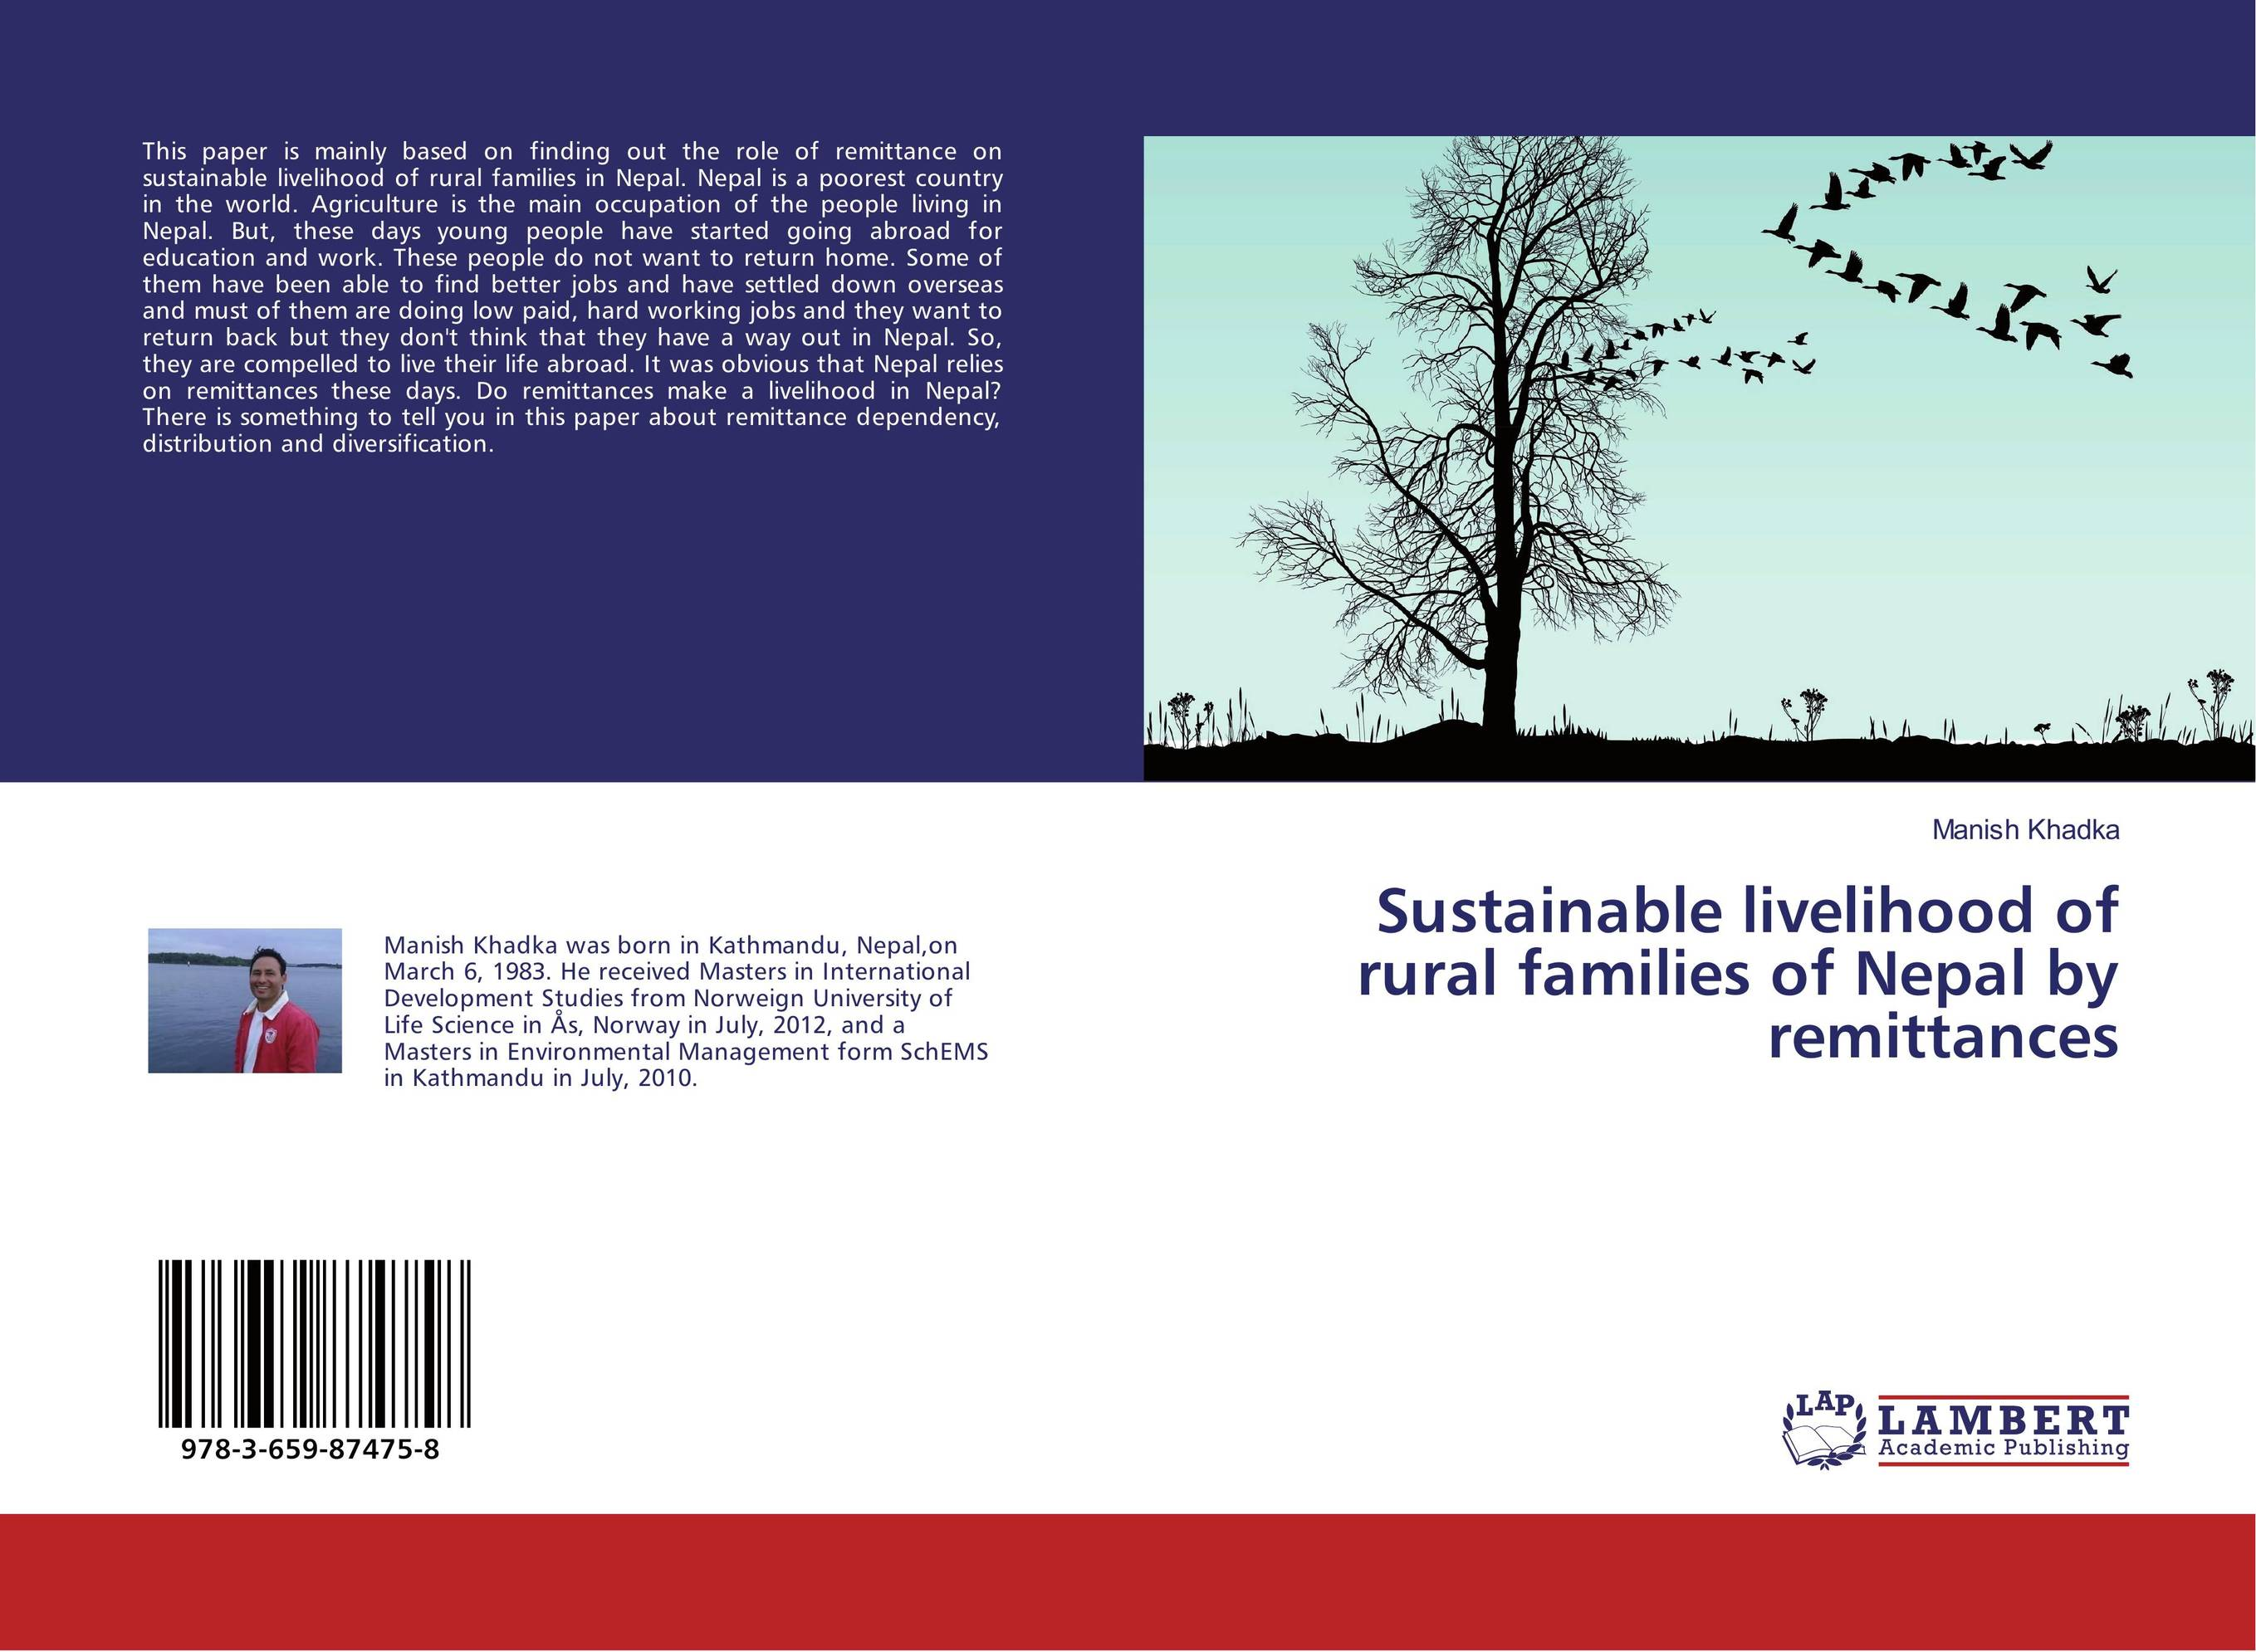 Sustainable livelihood of rural families of Nepal by remittances